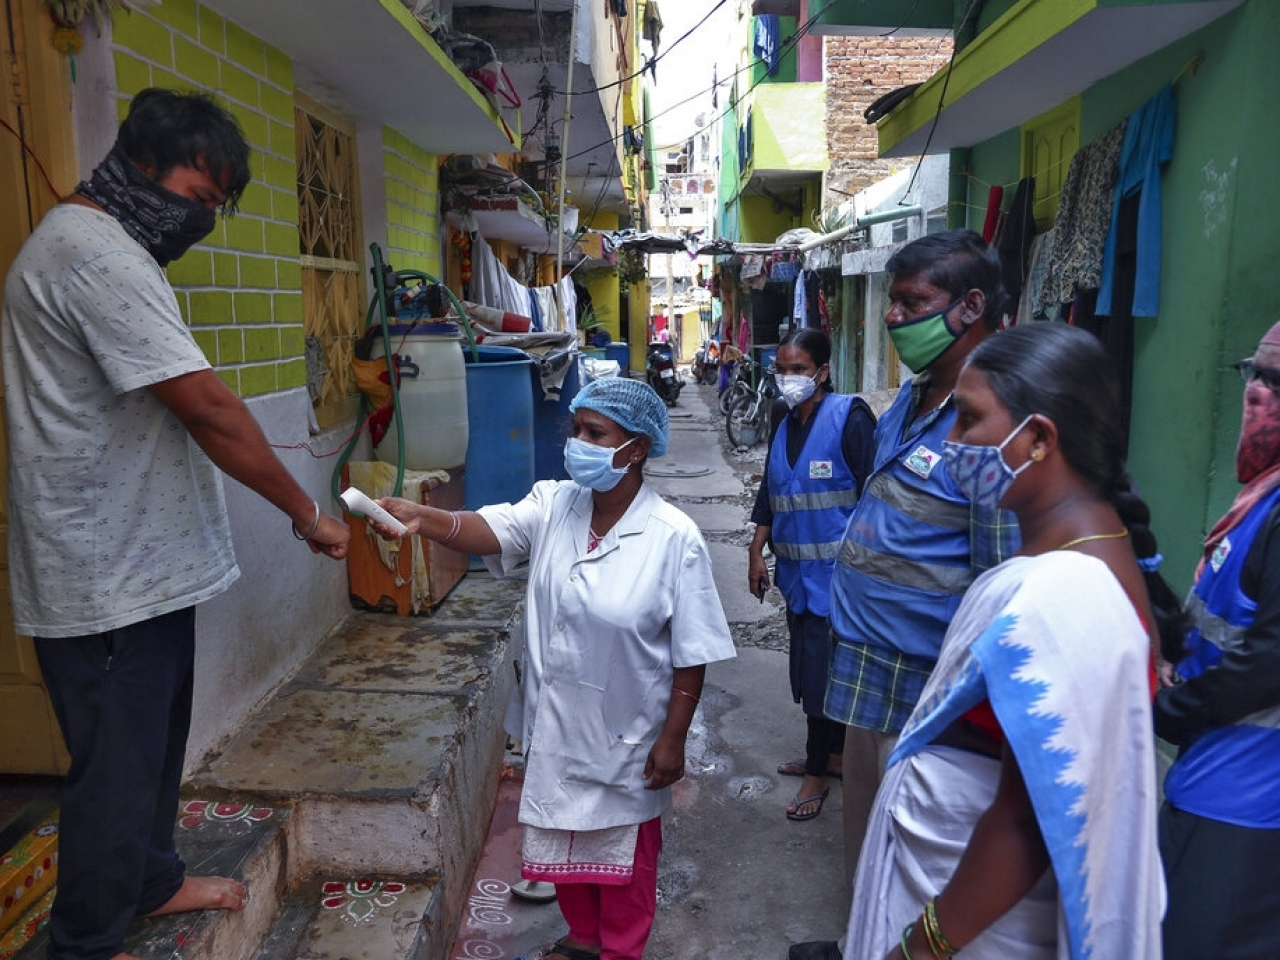 India on Saturday reported another 257,000 cases and 4,194 deaths in 24 hours, taking its total to 26.2 million infections and 295,525 deaths. Photo: AP